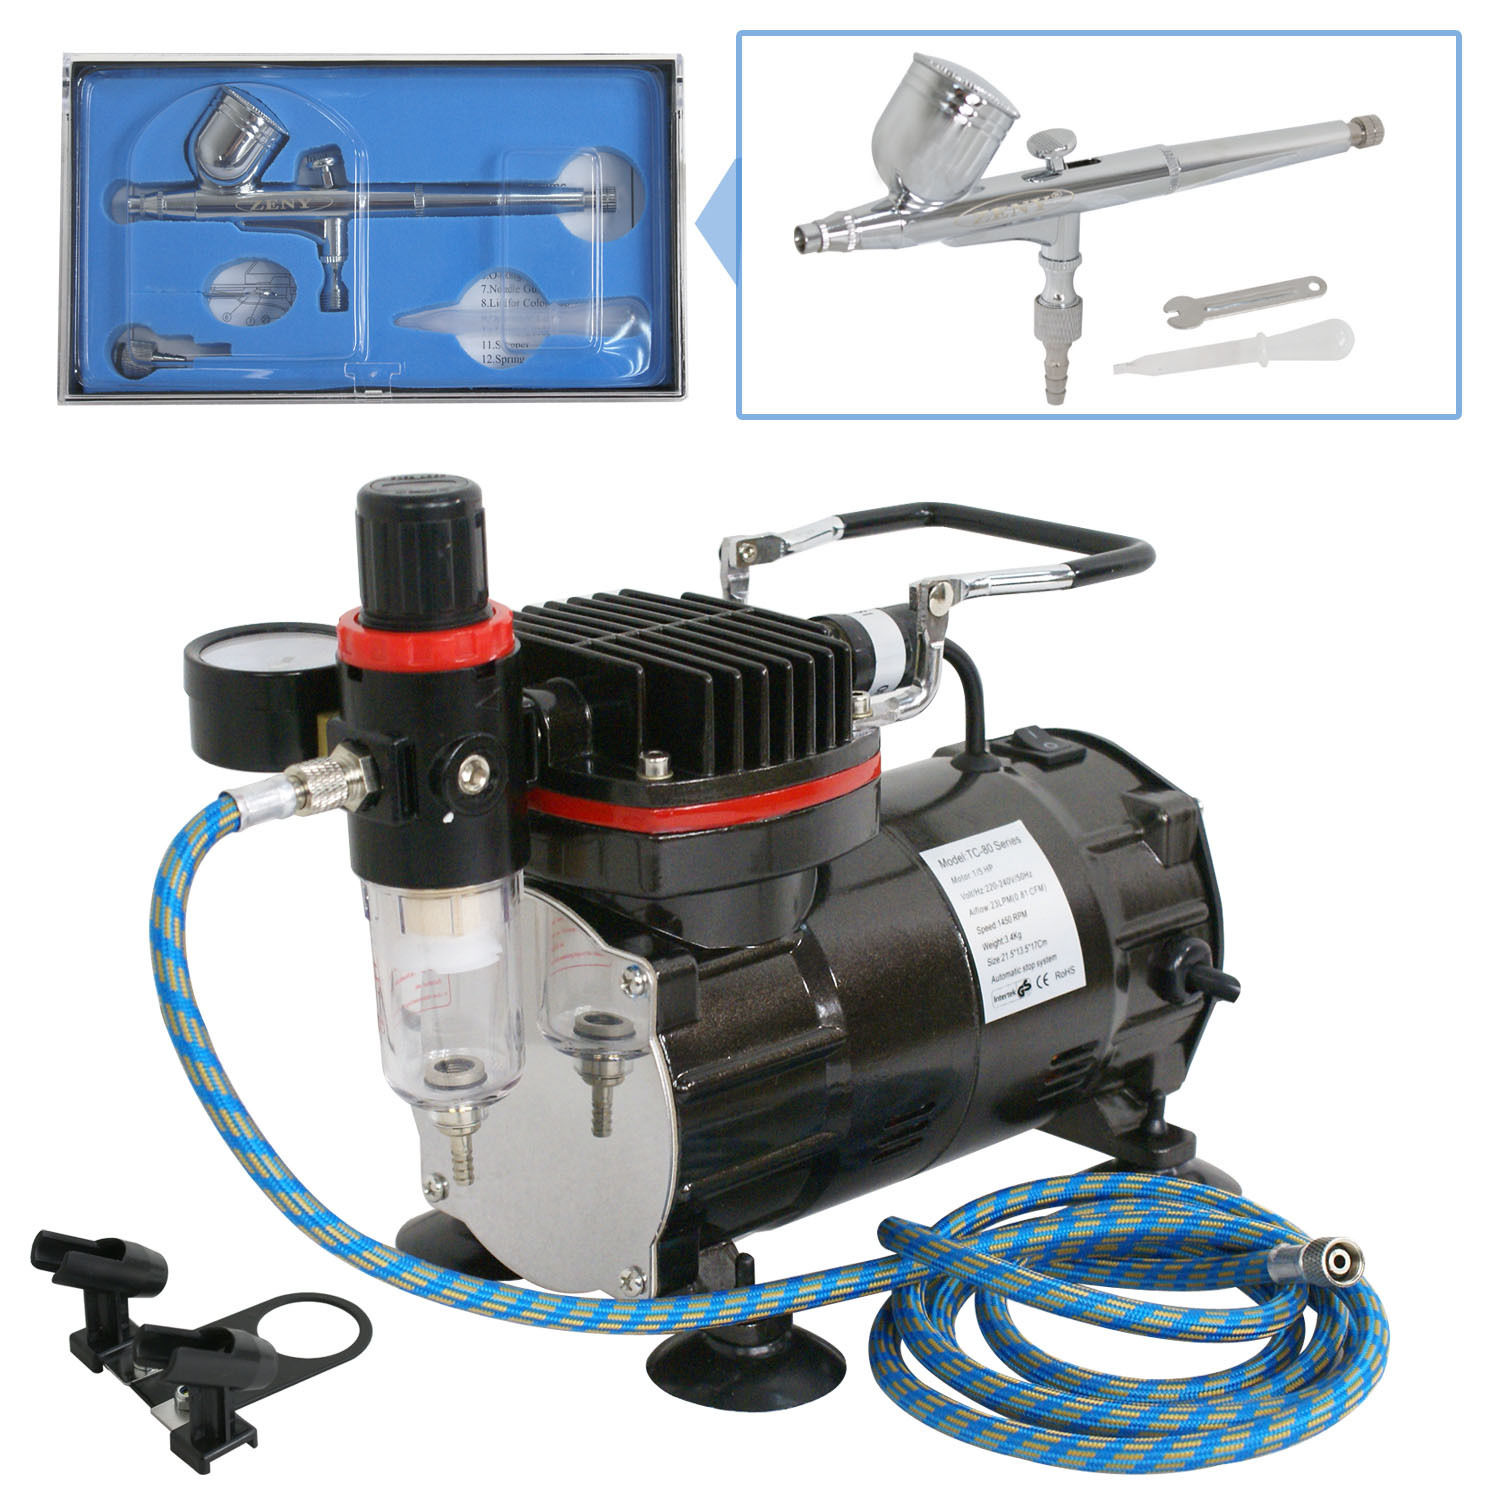 Zeny New Beginner Dual-Action AIRBRUSH AIR COMPRESSOR KIT SET Craft Cake Hobby Paint